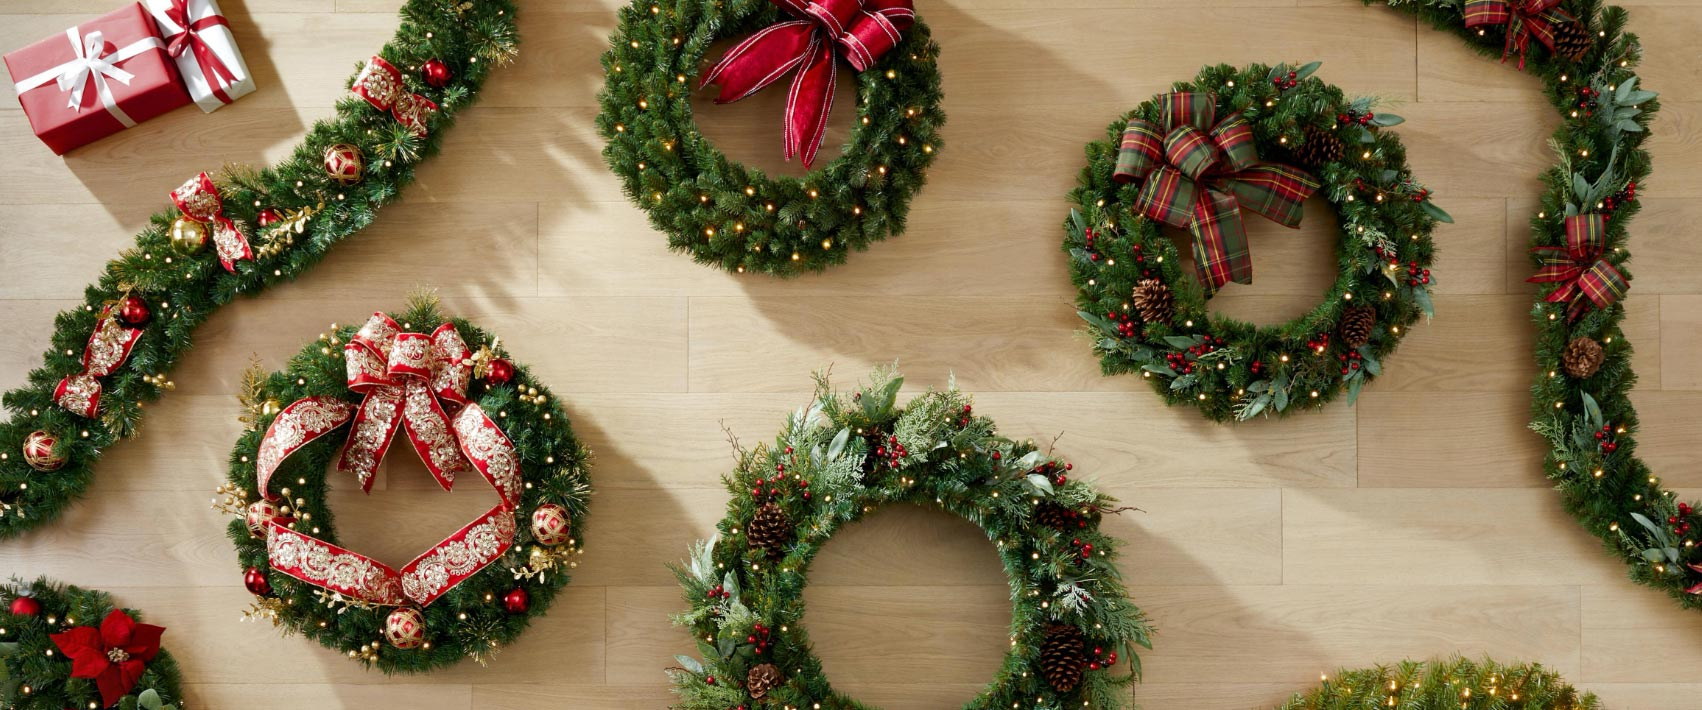 HOW TO CHOOSE THE BEST CHRISTMAS WREATH FOR YOUR HOME